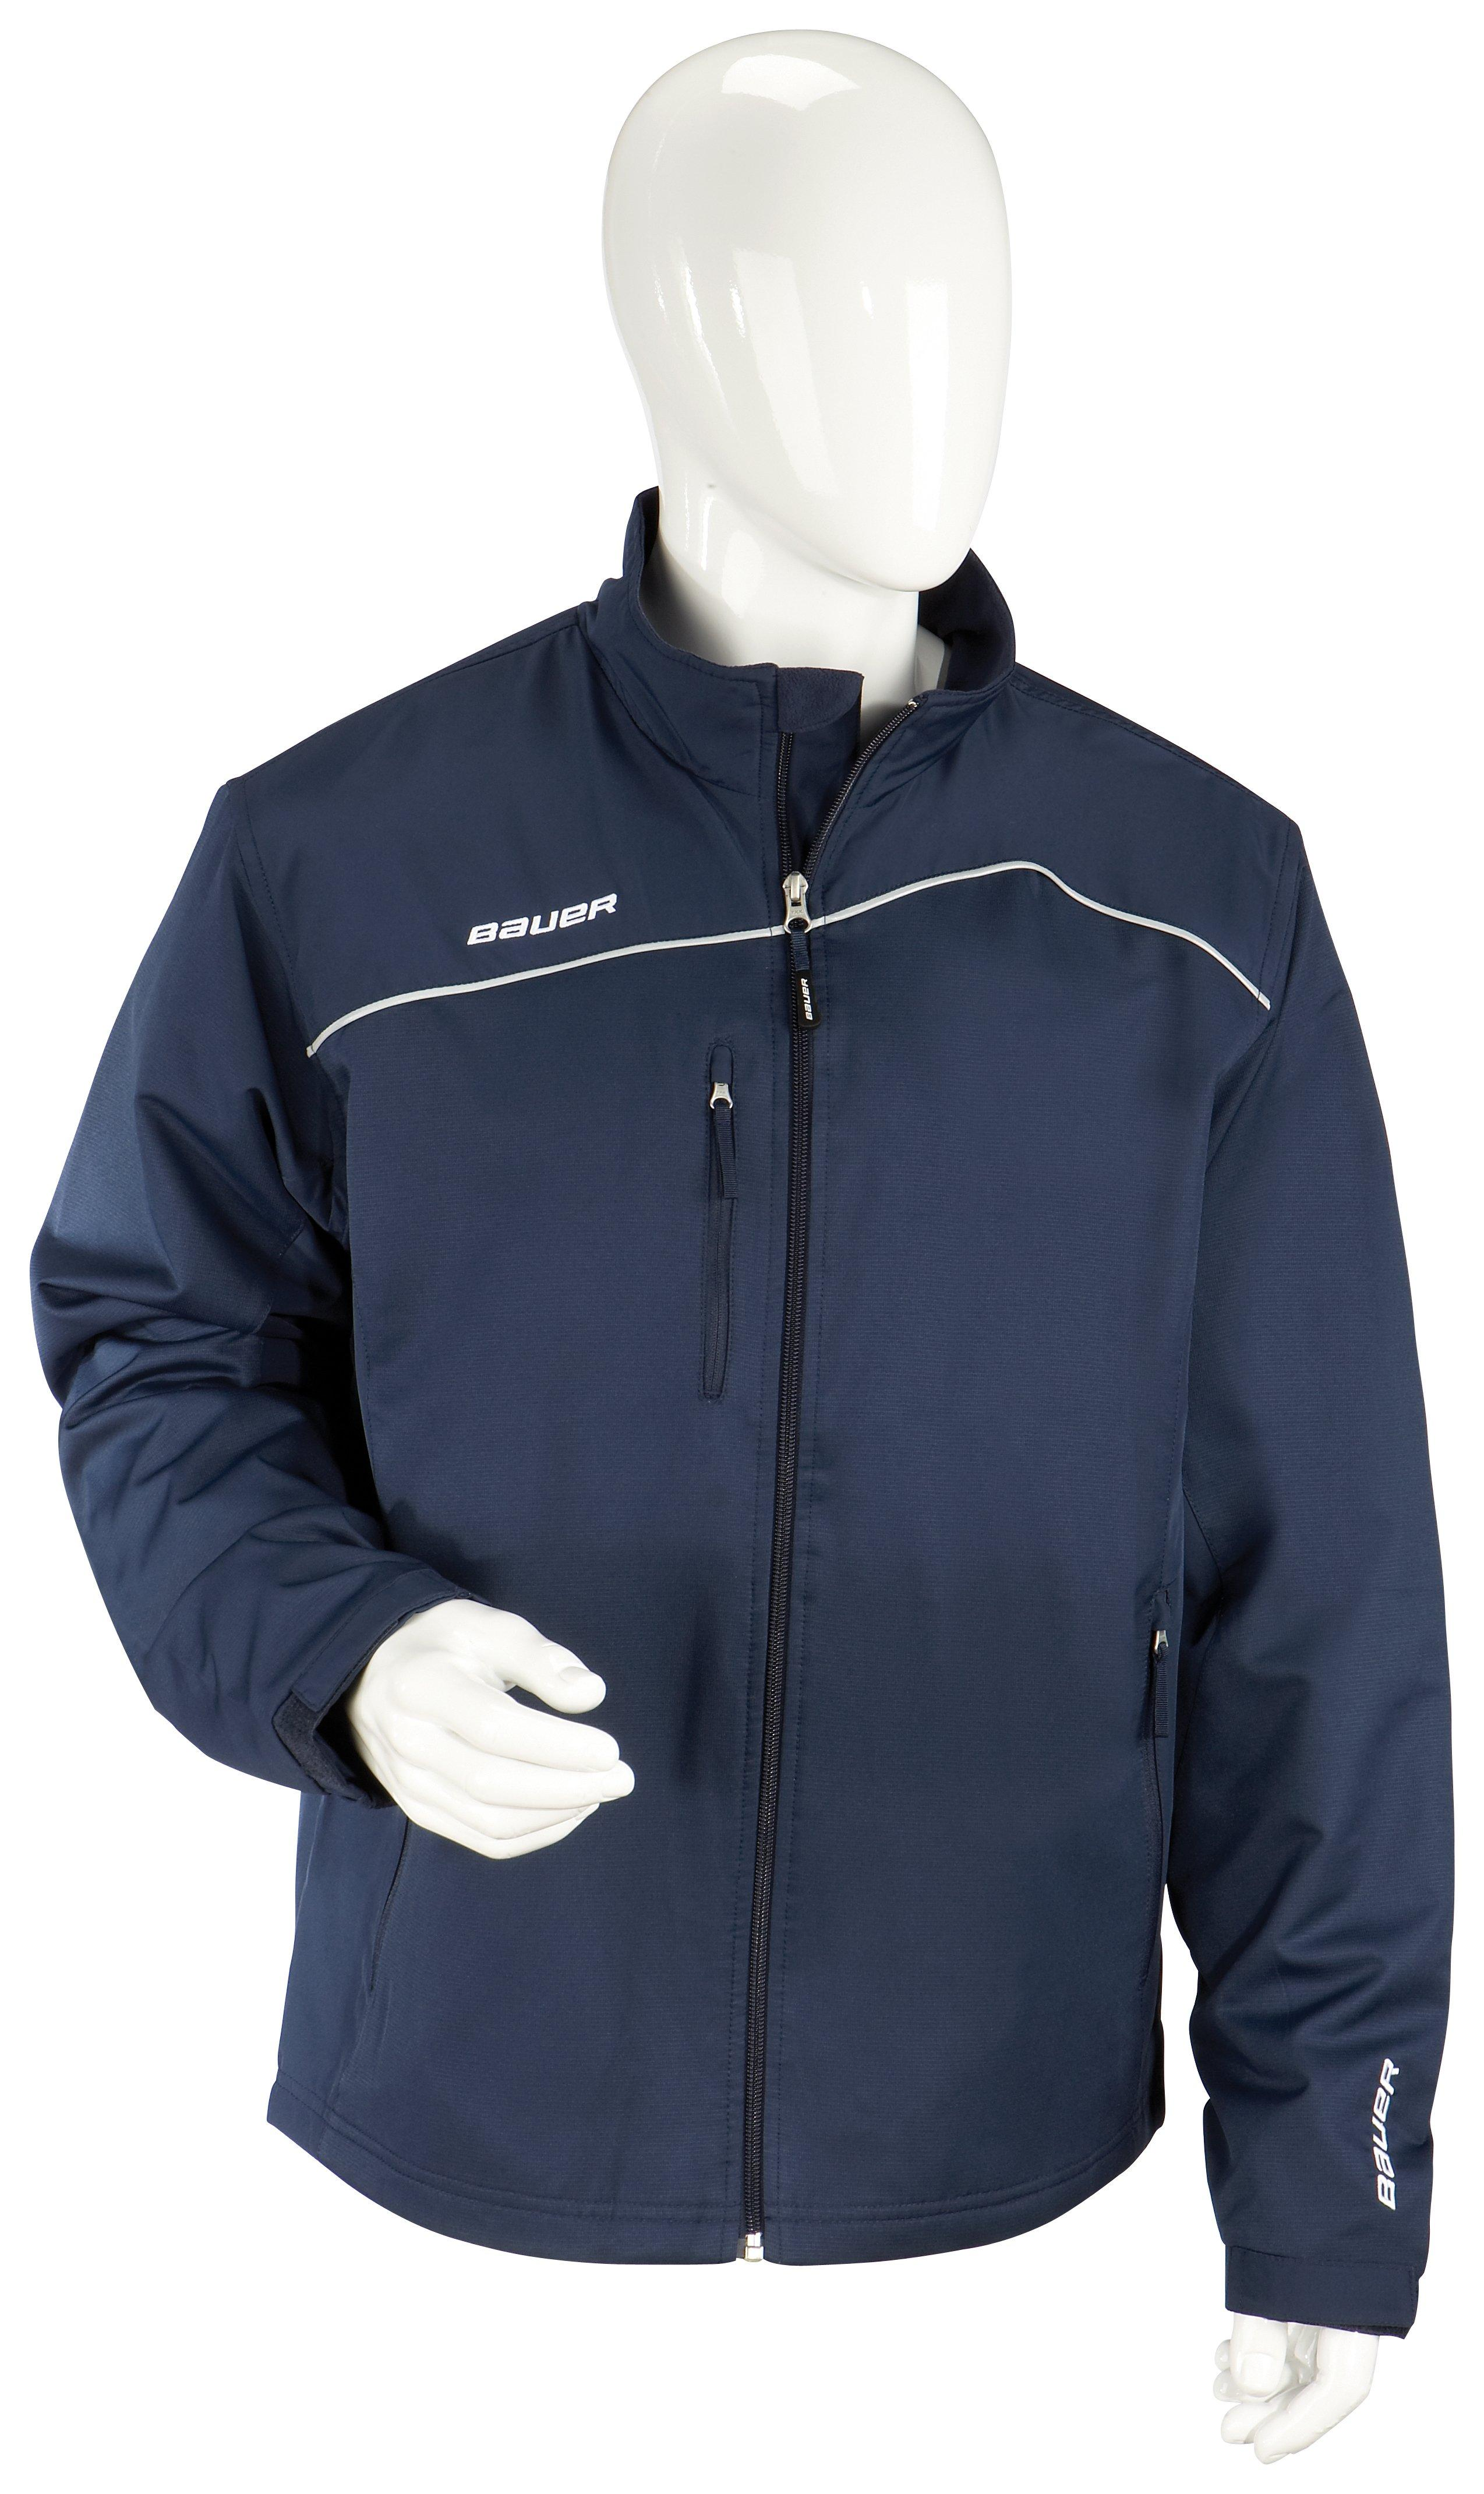 Lightweight Warmup Jacket,,Medium